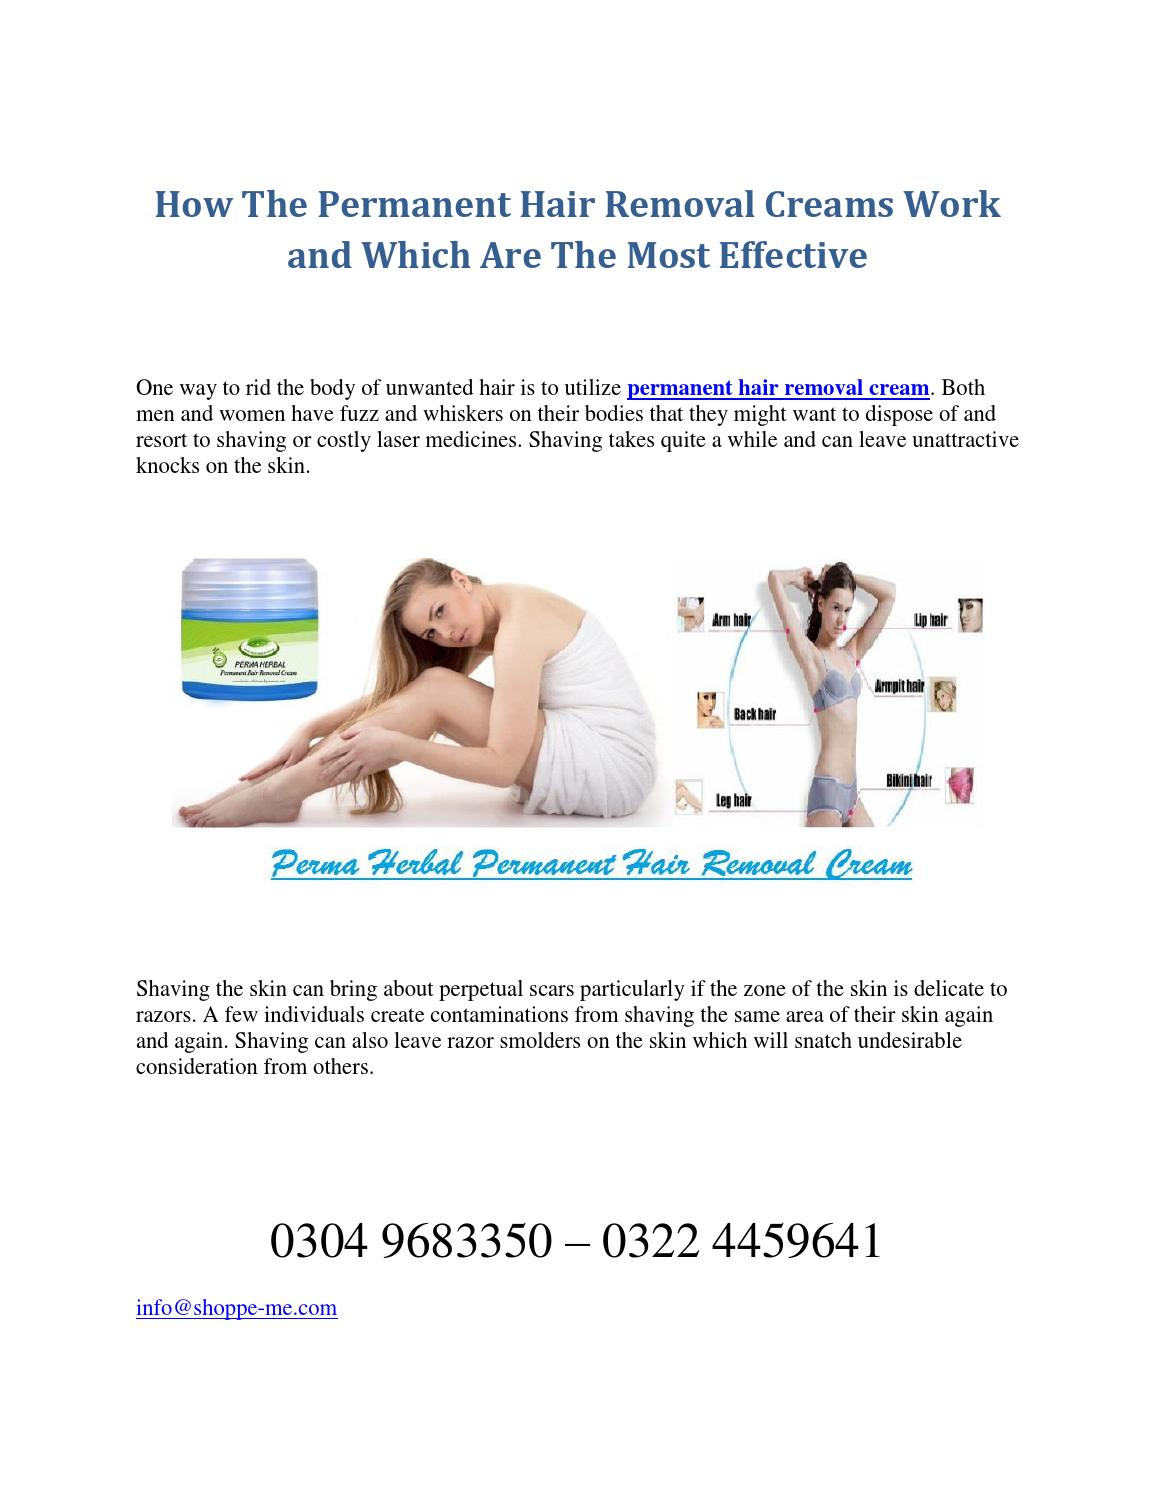 Permanent Hair Removal Cream In Pakistan By Shoppe Me Issuu